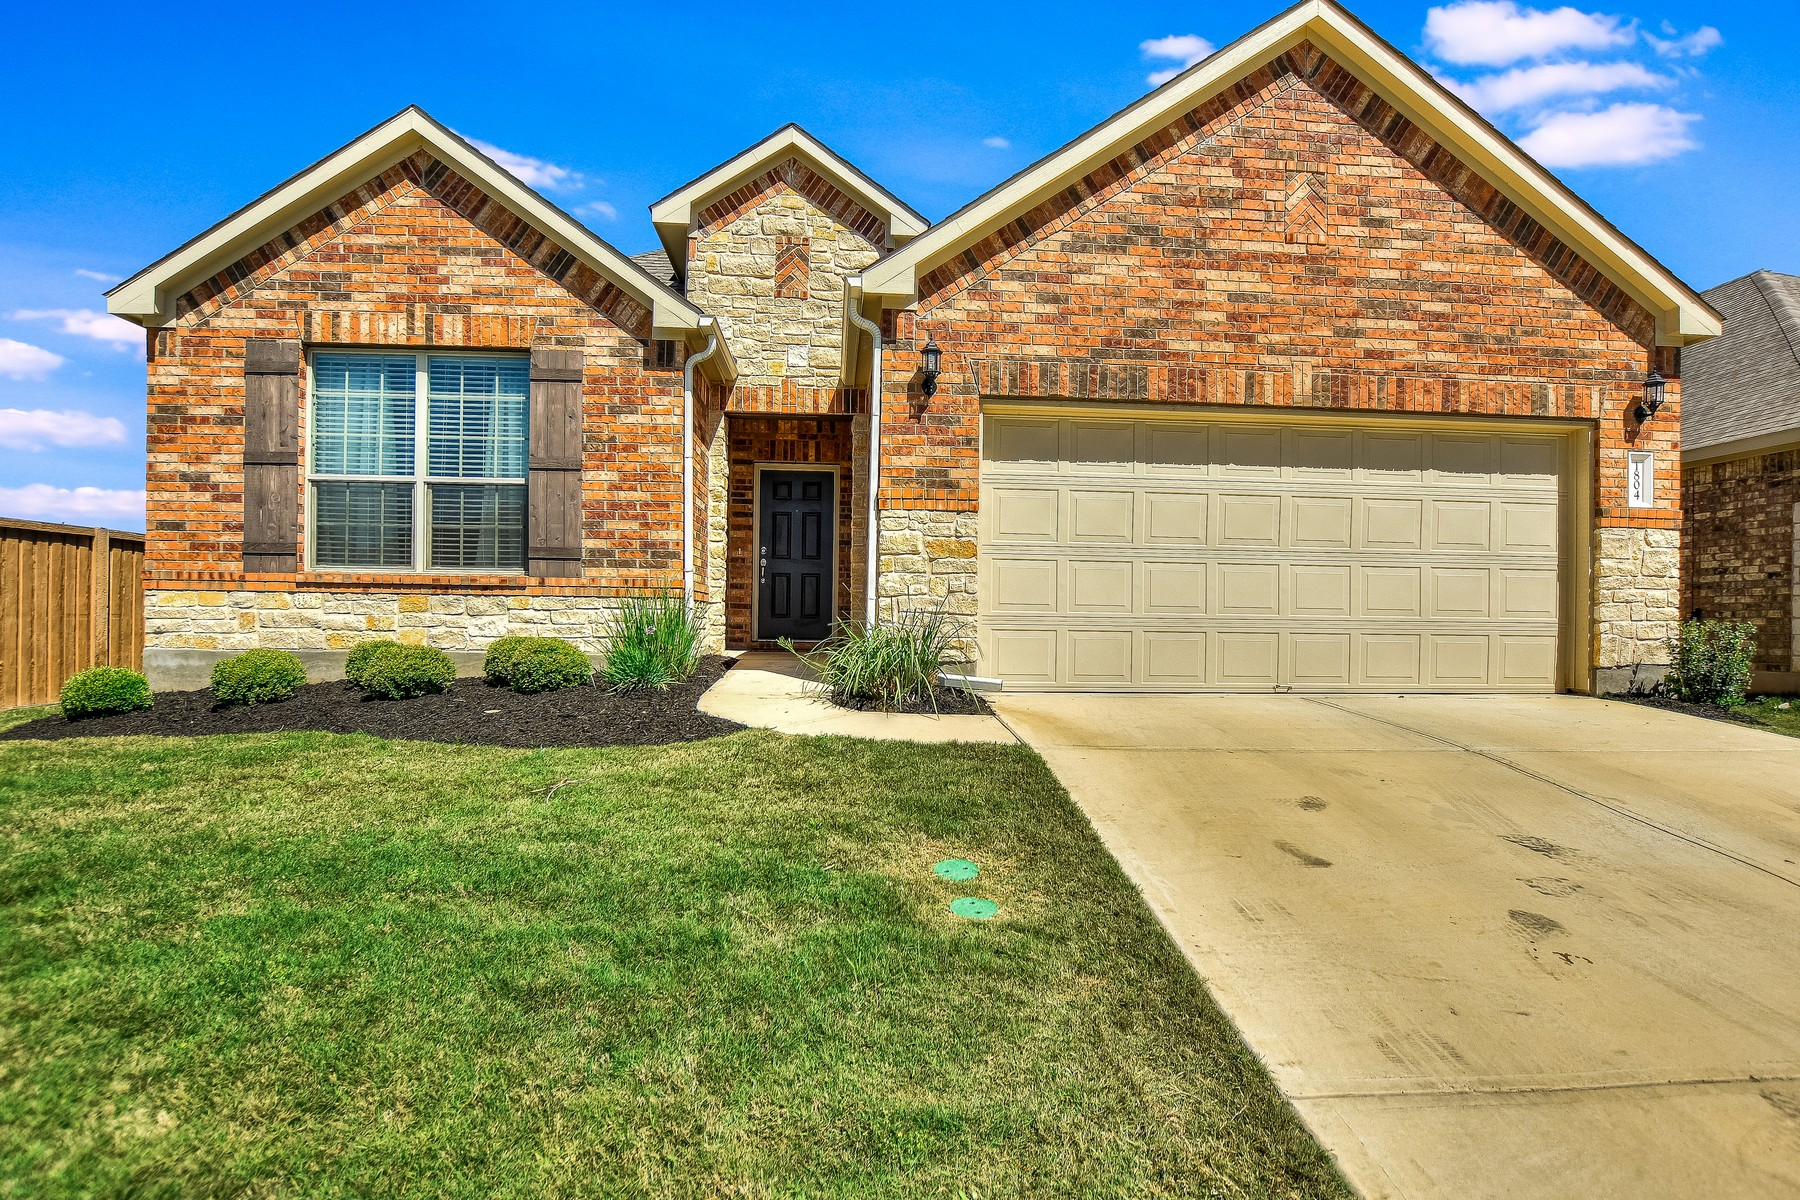 Casa Unifamiliar por un Venta en Beautiful Leander Home 1804 Elaina Lp Leander, Texas 78641 Estados Unidos